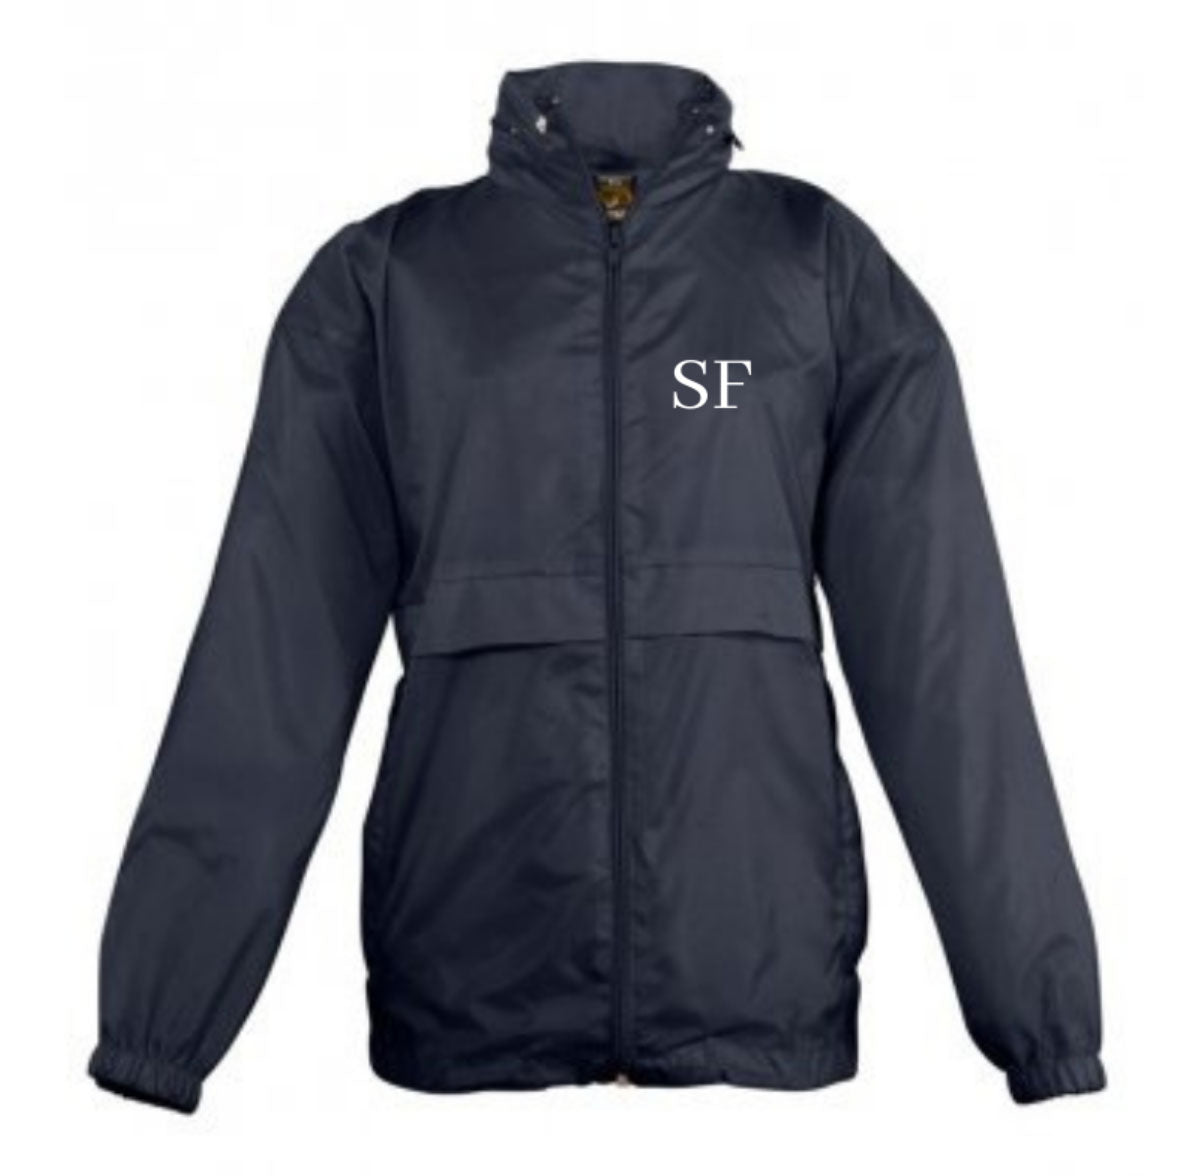 Embroidered Navy Blue Windbreaker Jacket